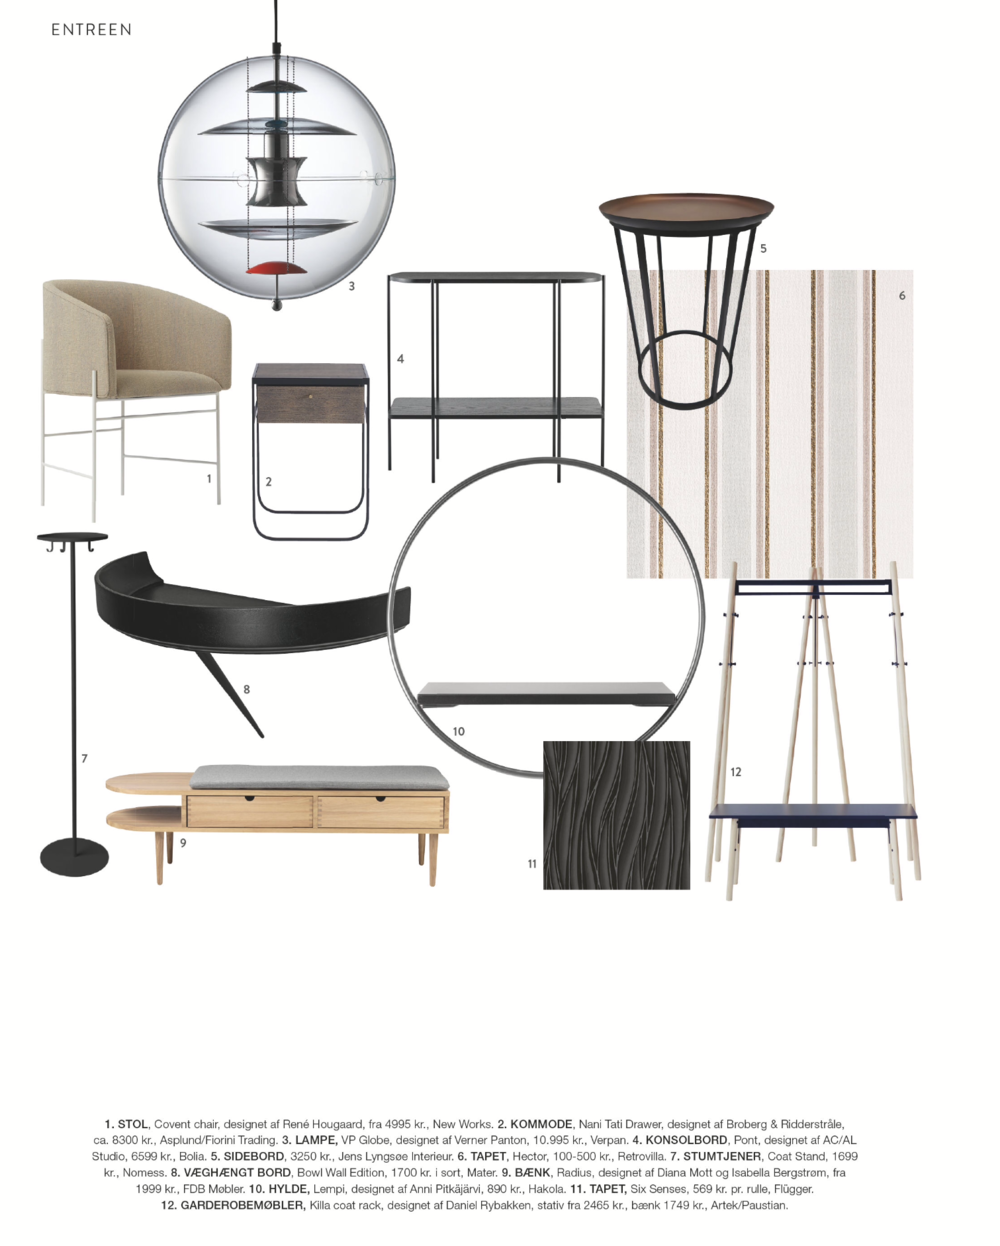 Covent Chair in Costume Living's mood board for the entrance hall